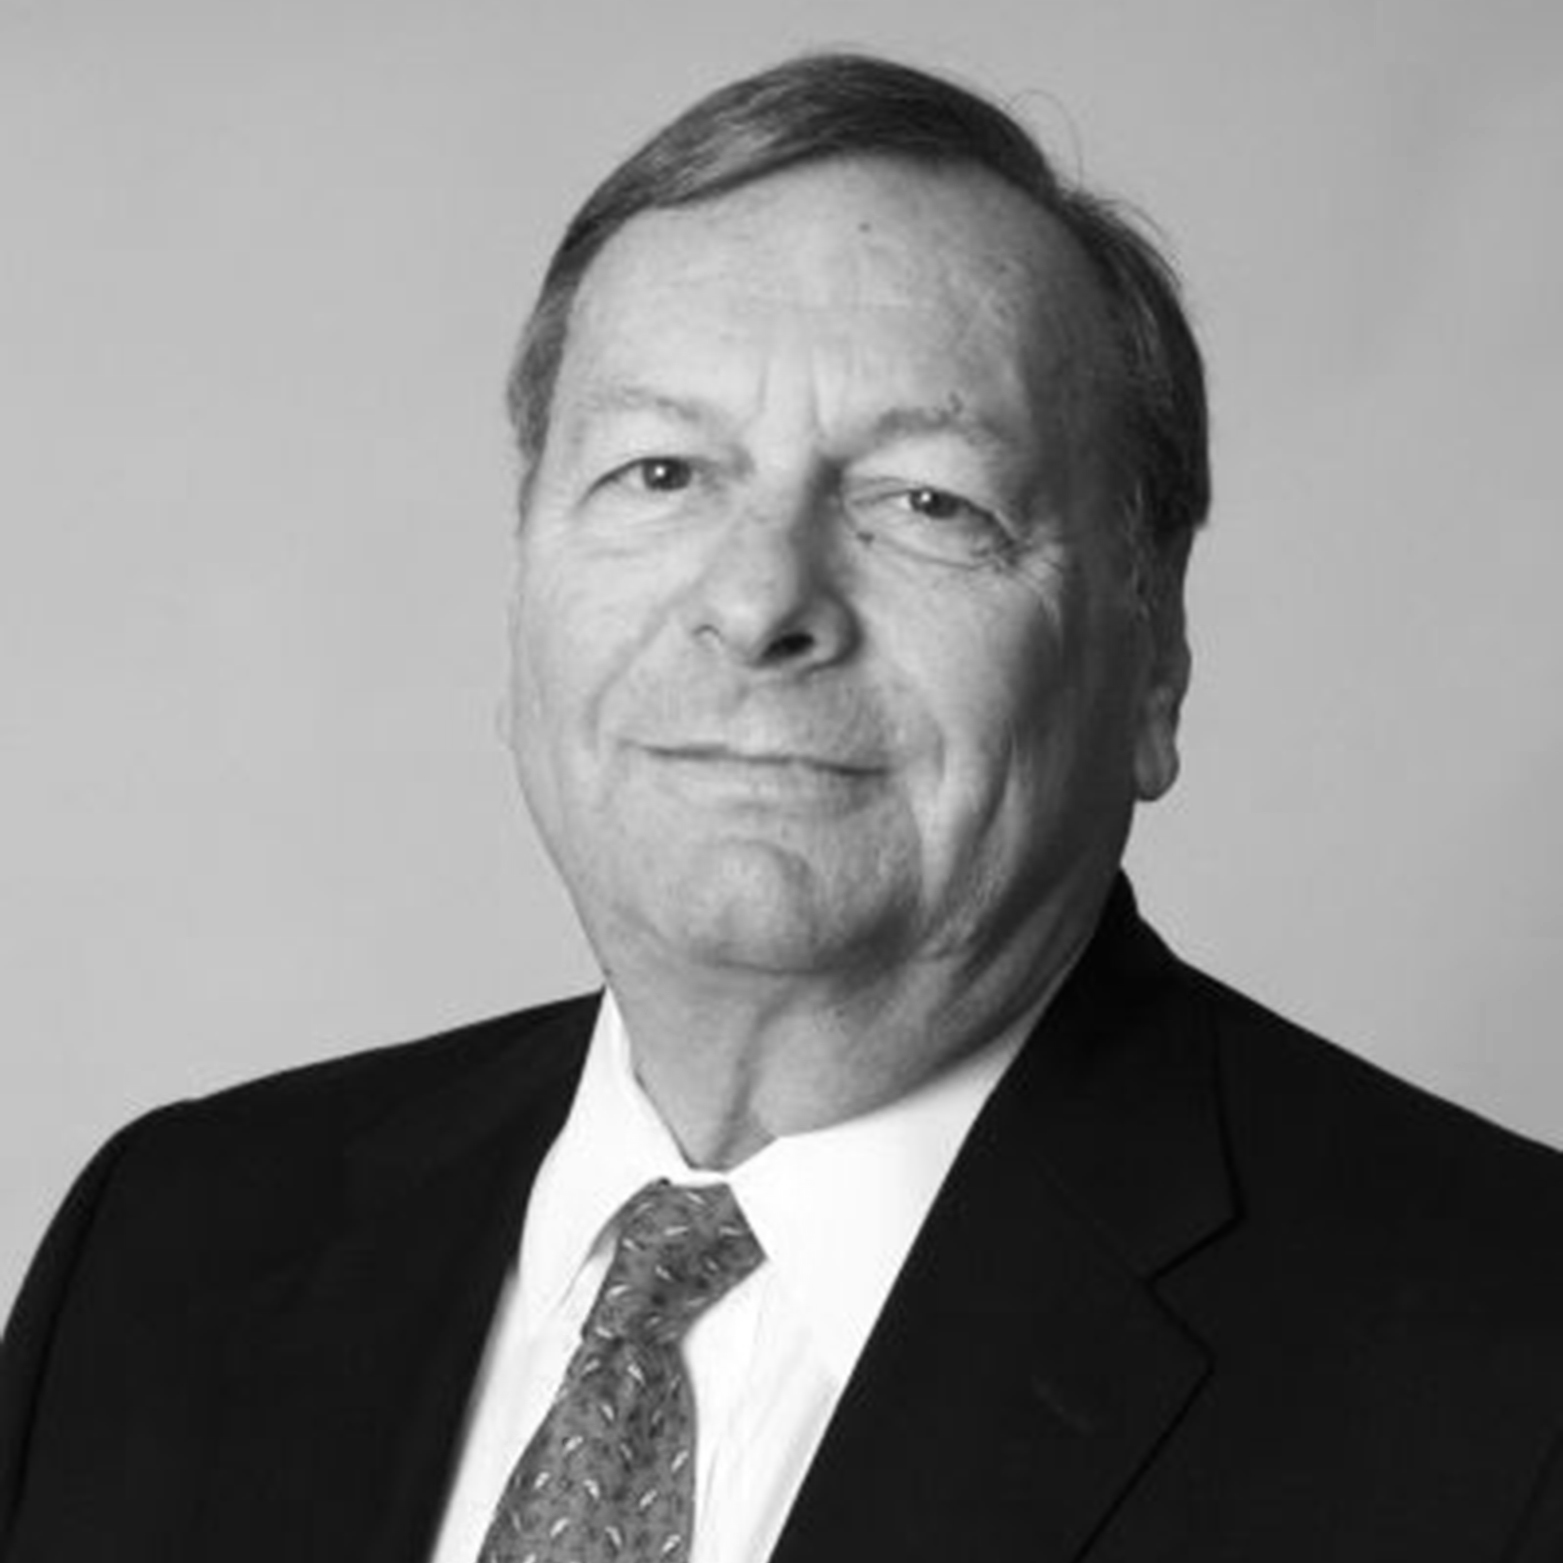 RONALD L. EDWARDS  Chairman, Board of Directors